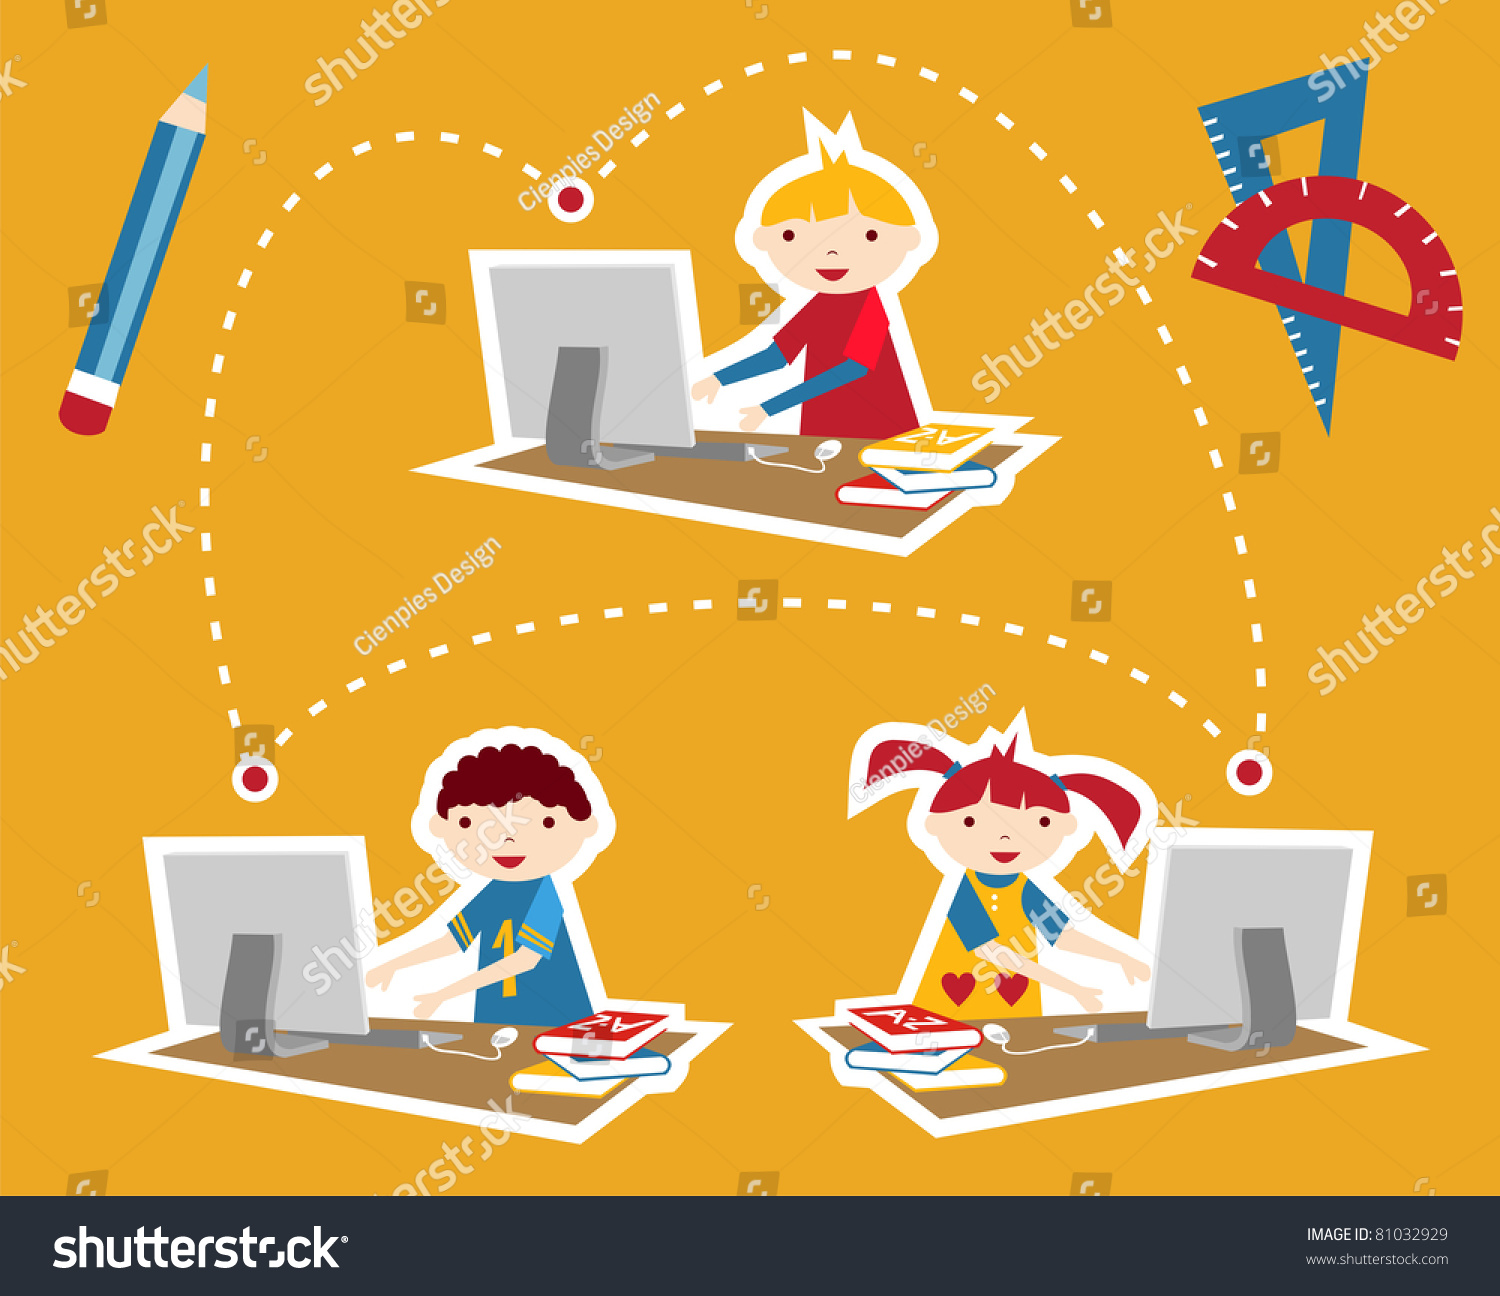 internet as a learning tool For you and me, using the internet as a tool not as a playground is a dire need for our daily life, mind, interests, future, knowledge but there are those who don't care.